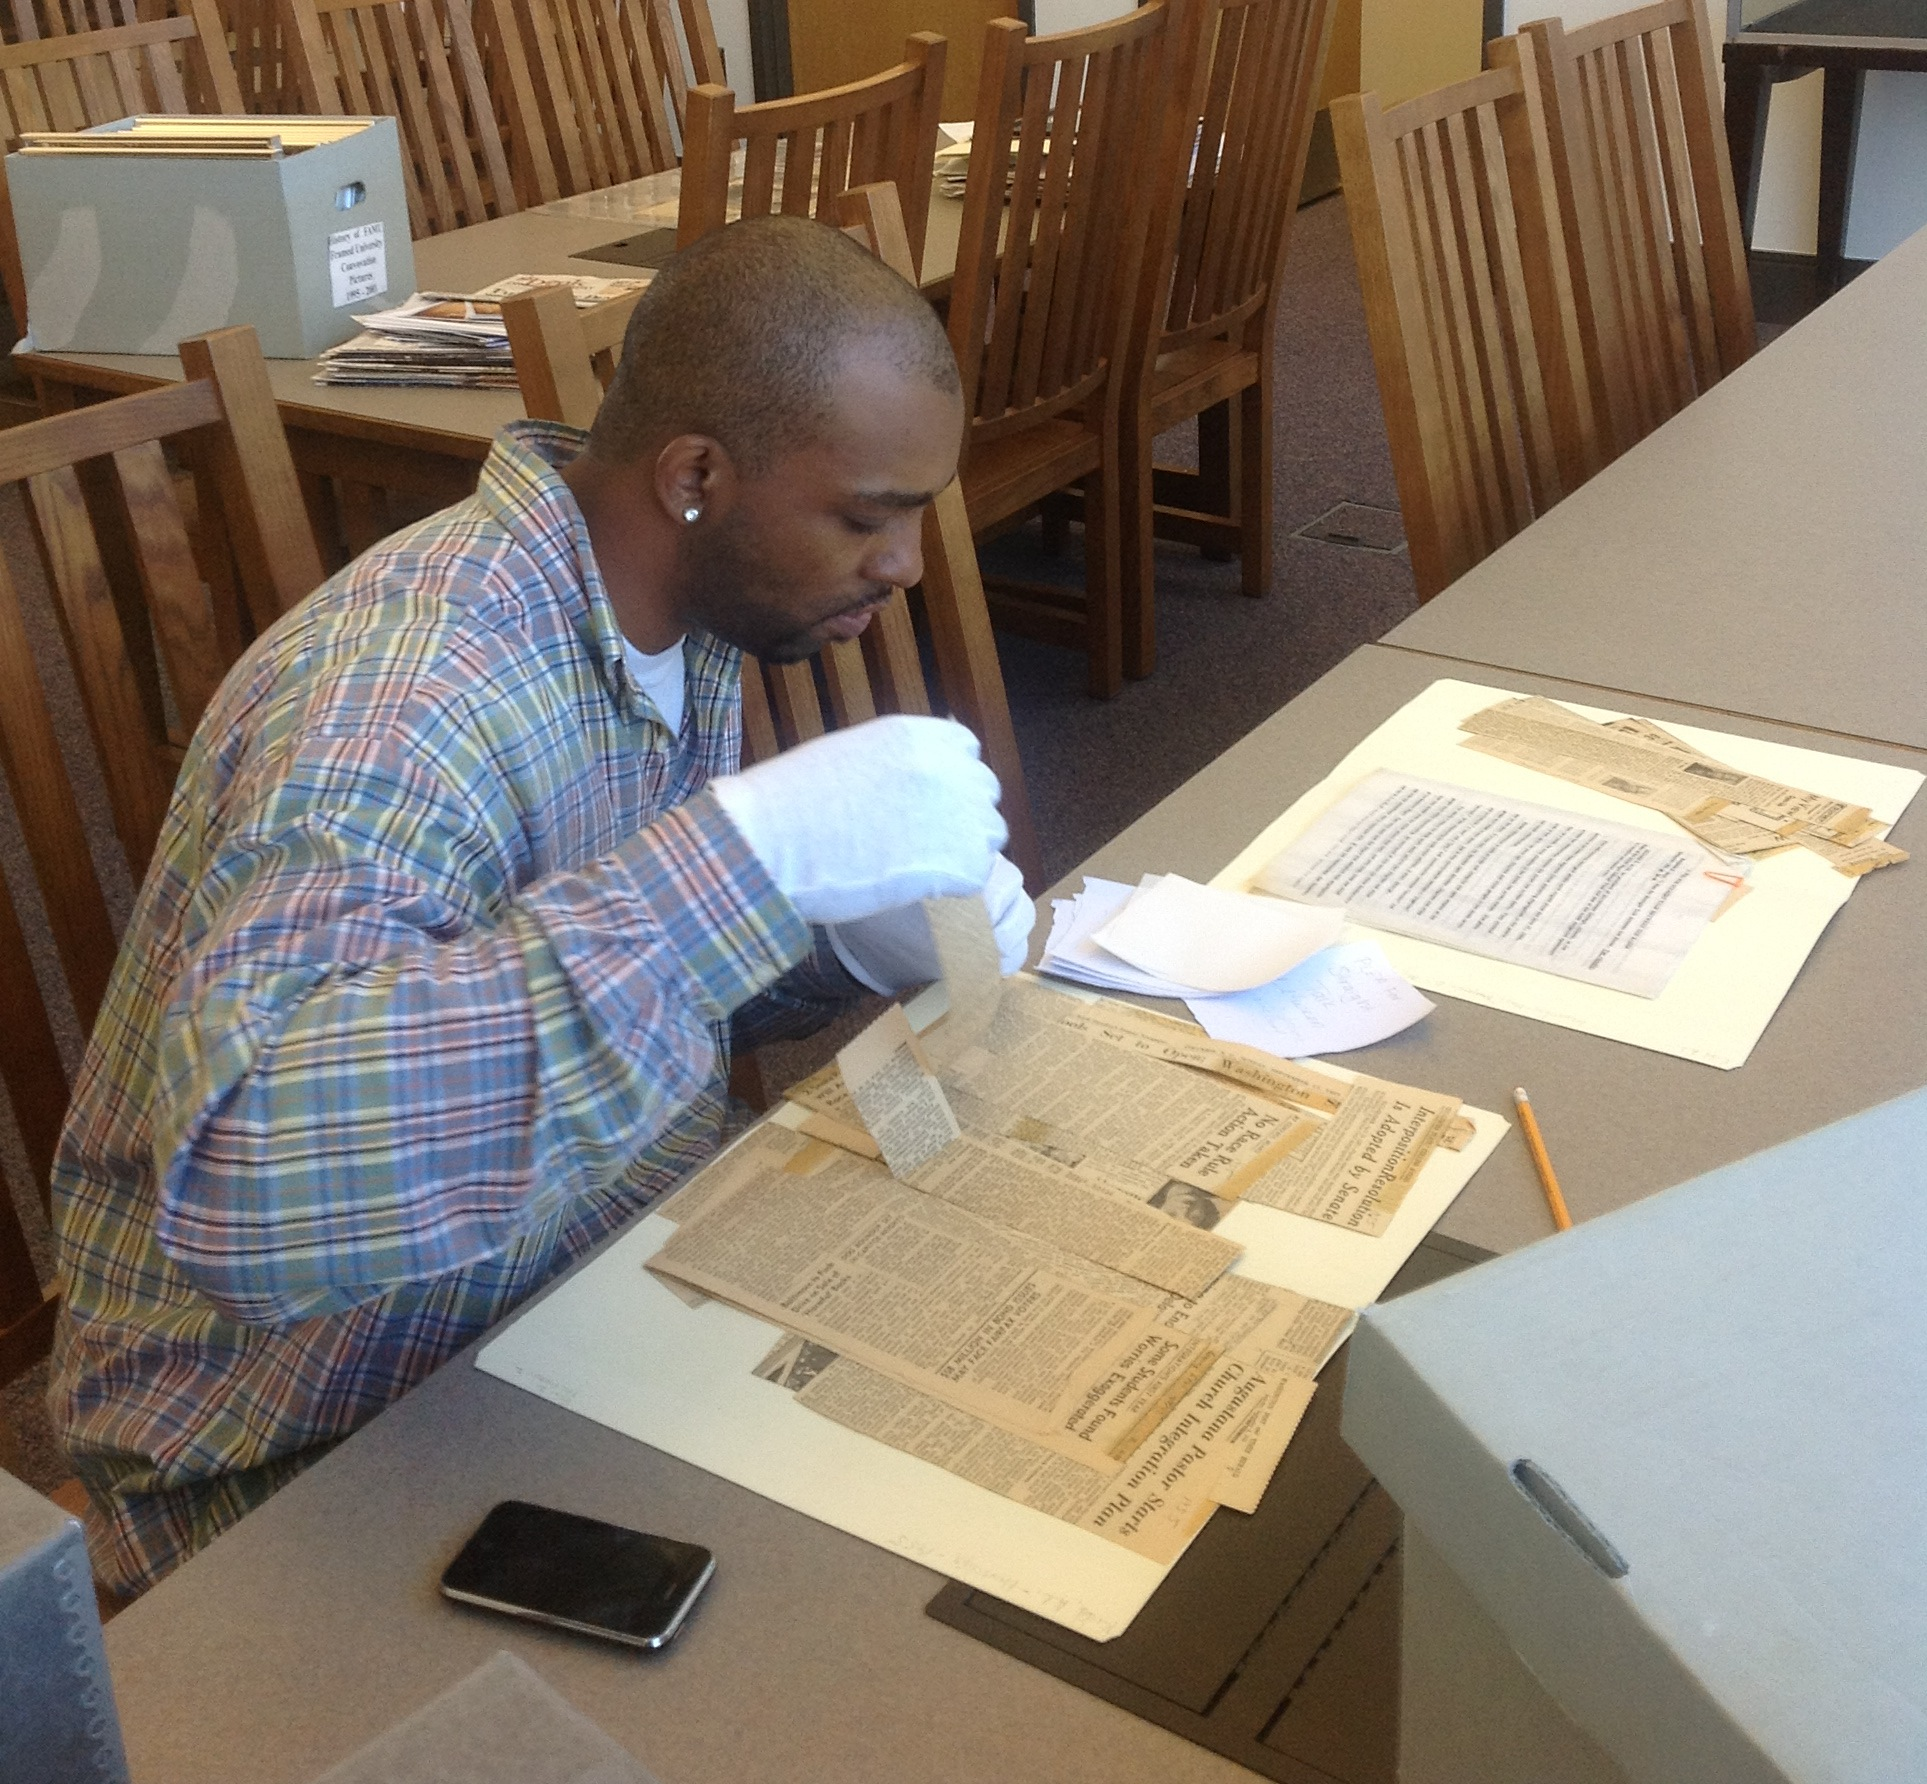 I AMM Fellow Anthony Thompson browses archival material.